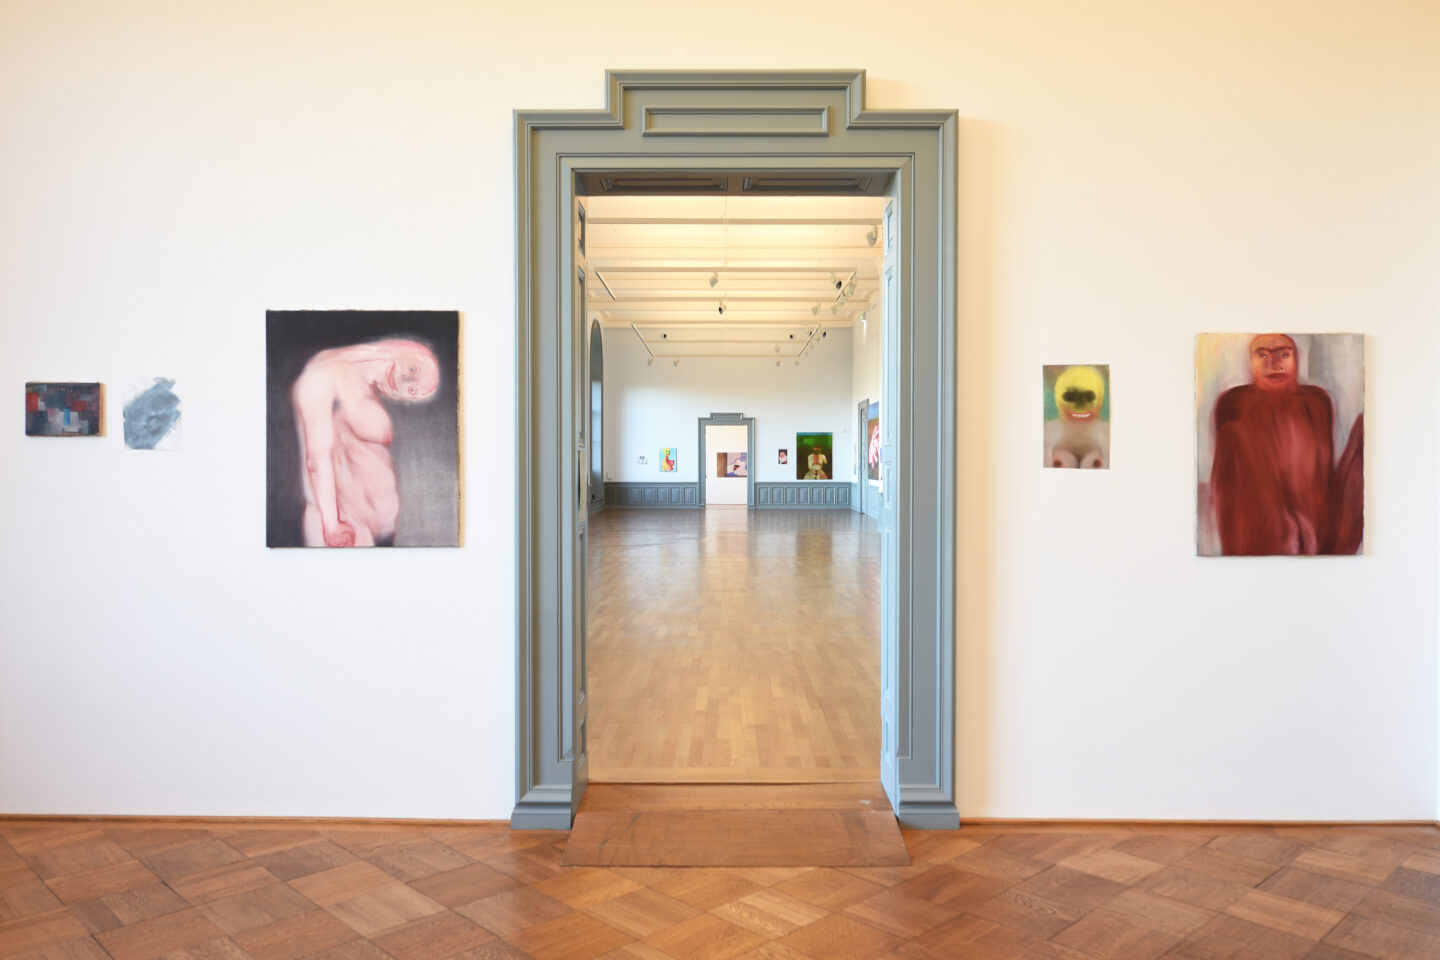 Exhibition View Miriam Cahn Soloshow «Exhibition View Miriam Cahn Soloshow «I AS HUMAN» at Kunstmuseum Bern, Bern / Courtesy: the artist / © Kunstmuseum Bern